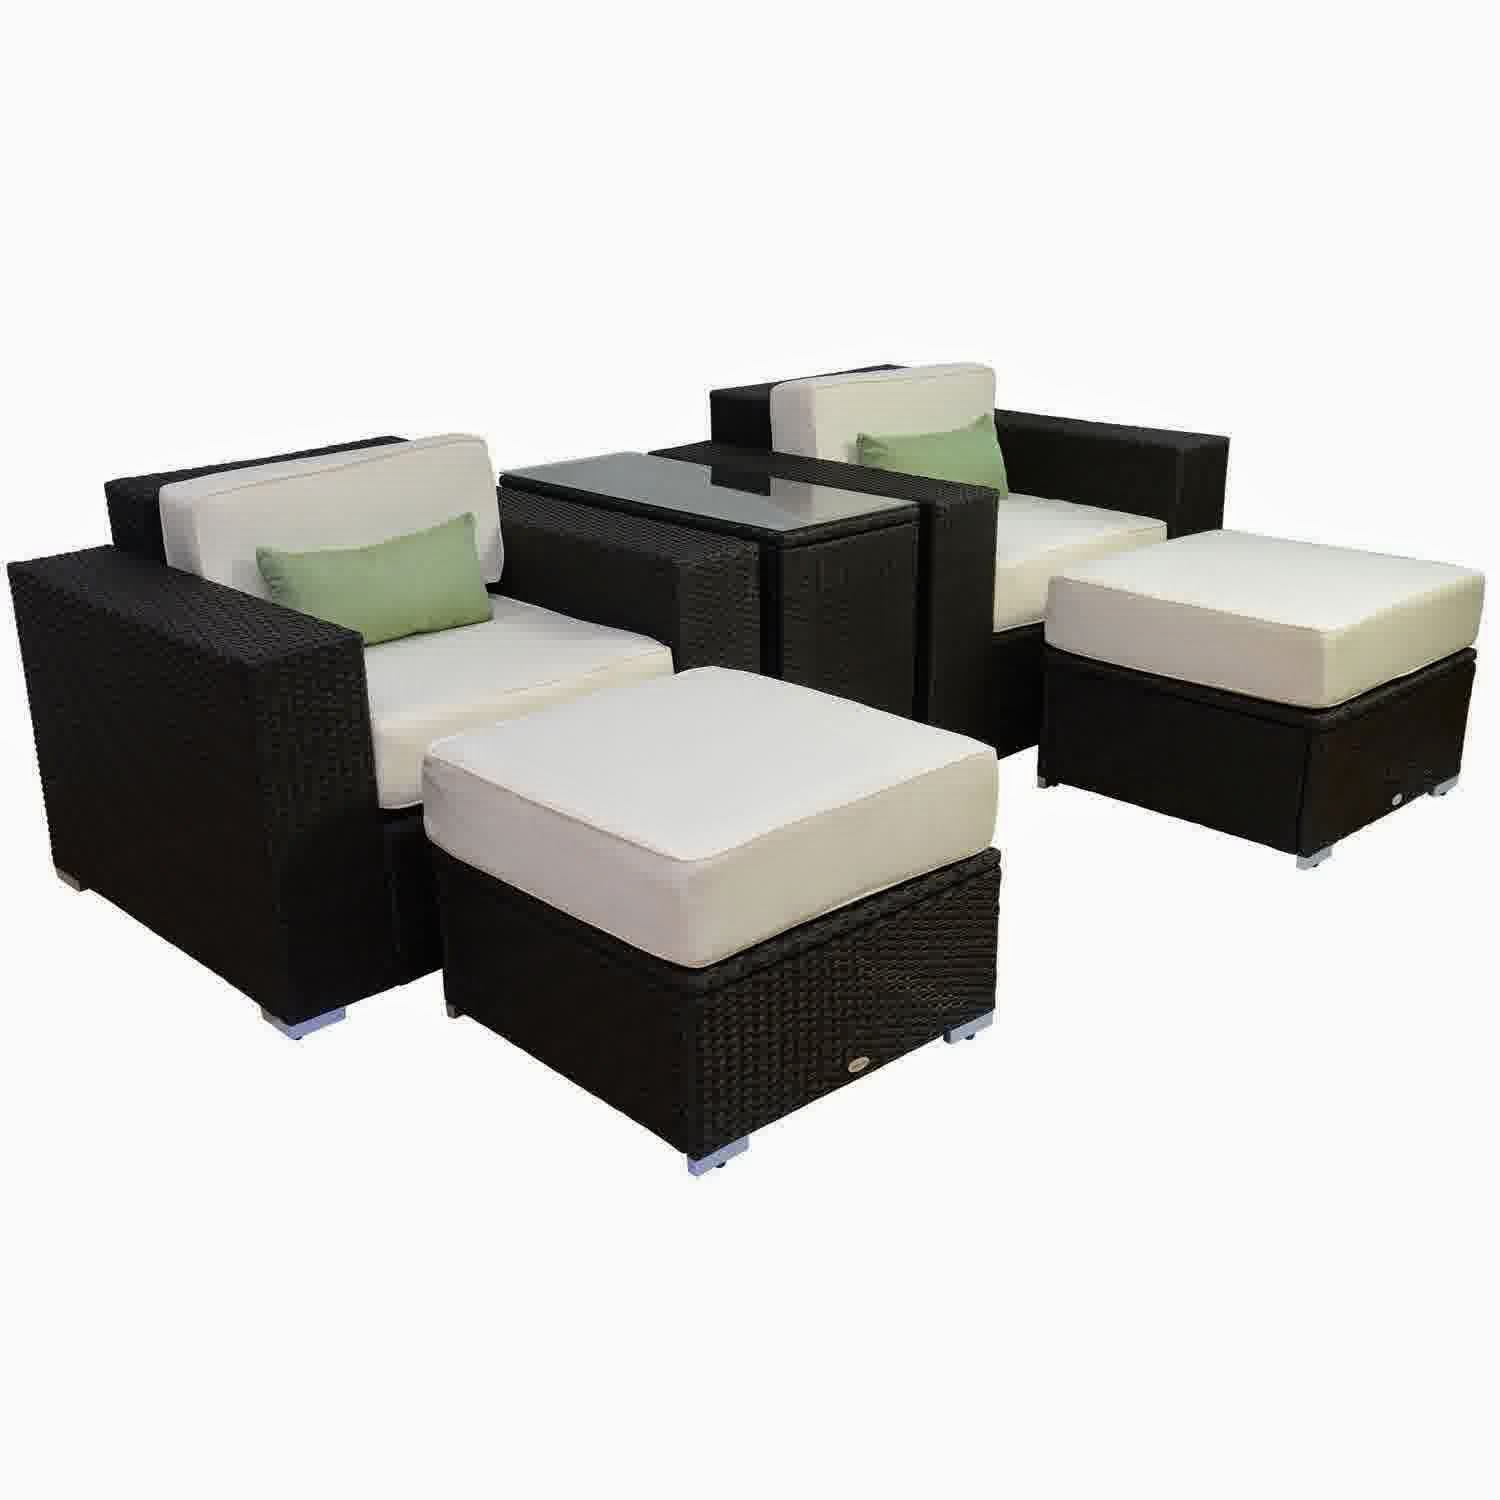 Outsunny 4pc Rattan Wicker Outdoor Patio Furniture Sofa Set Oxford Leather Discount Until 60 5pc Pe